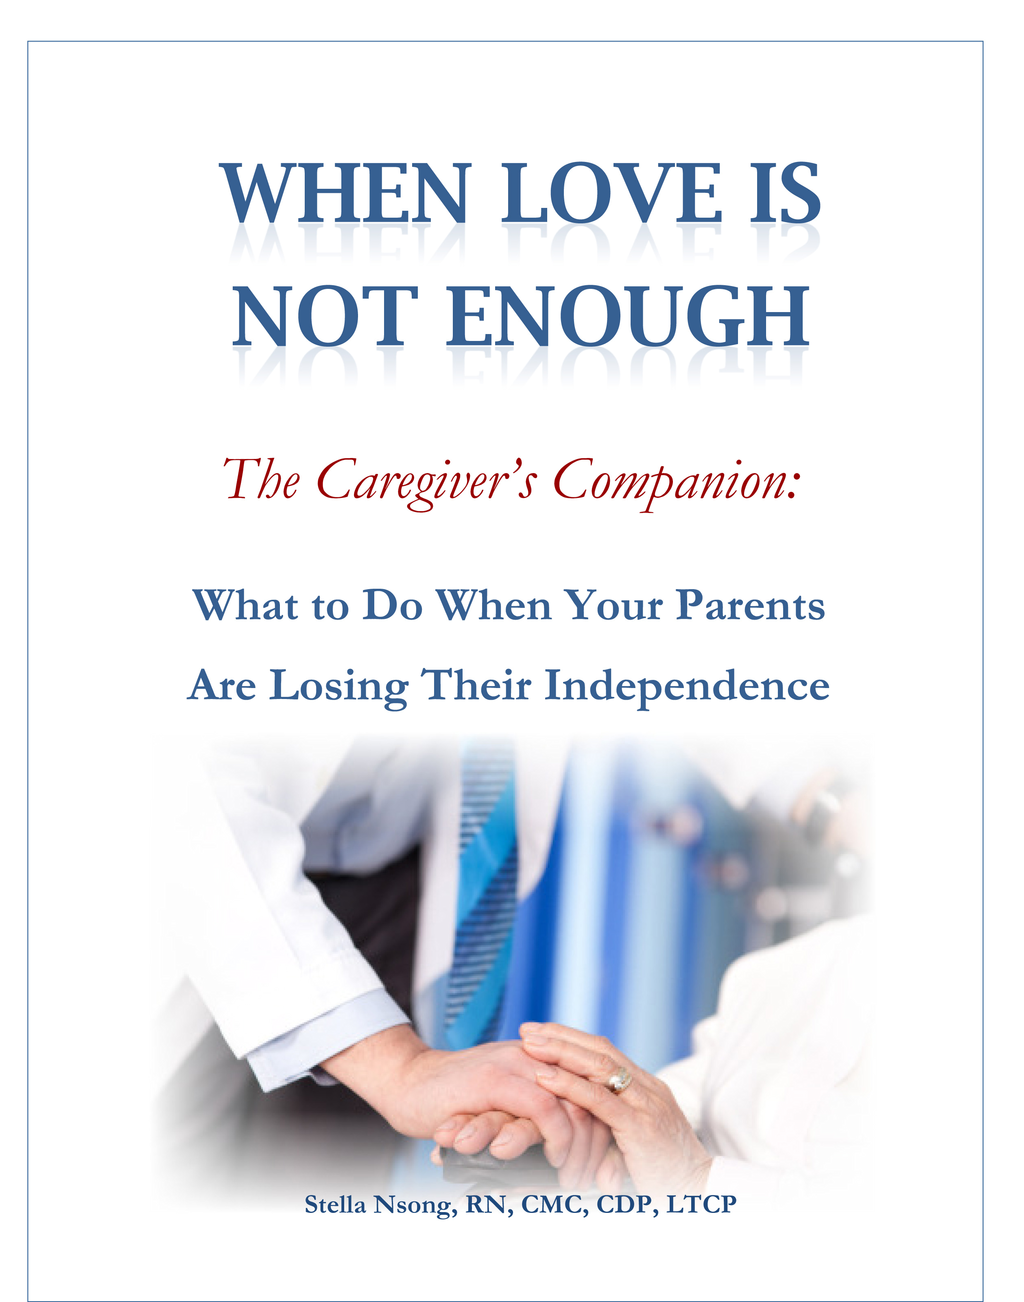 When Love in Not Enough, the Caregiver's Companion: What to Do When Your Parents Are Loosing Their Independence